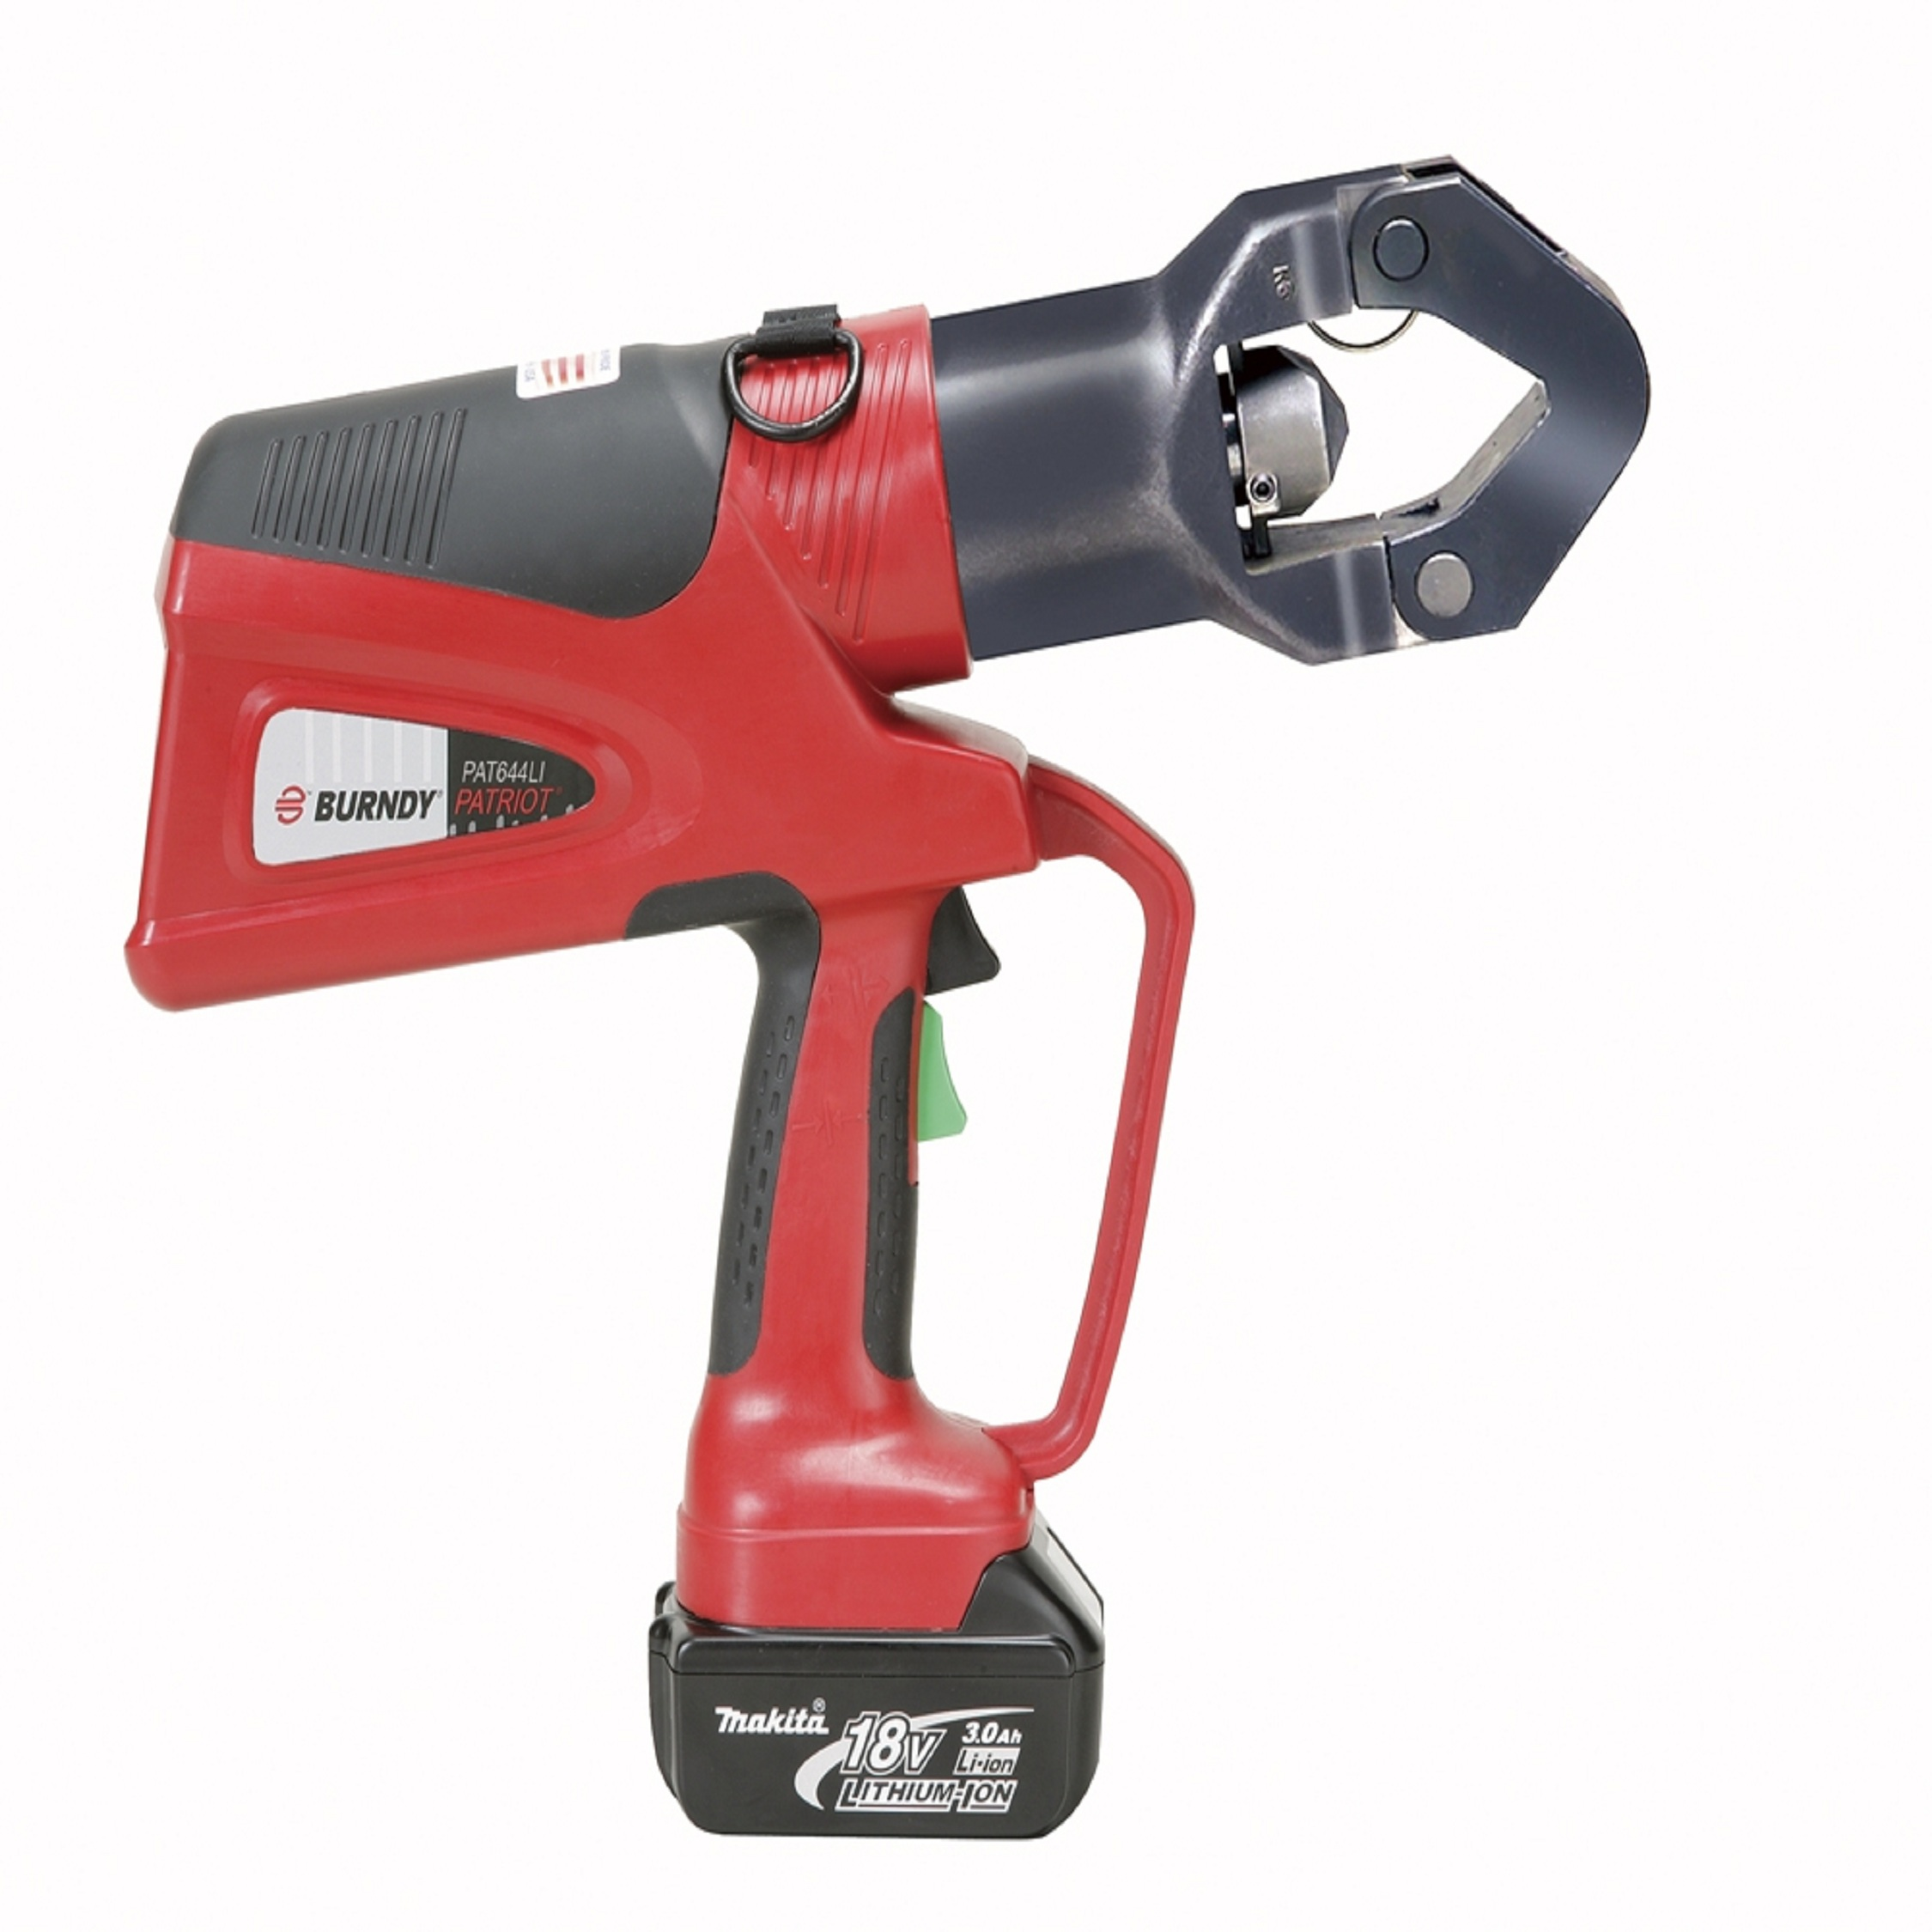 Burndy Battery Actuated Crimping Tool, Hydraulic Self Contained, 11 Ton Output Force, 6 AWG-1000 kcmil Copper, 6 AWG-750 kcmil A